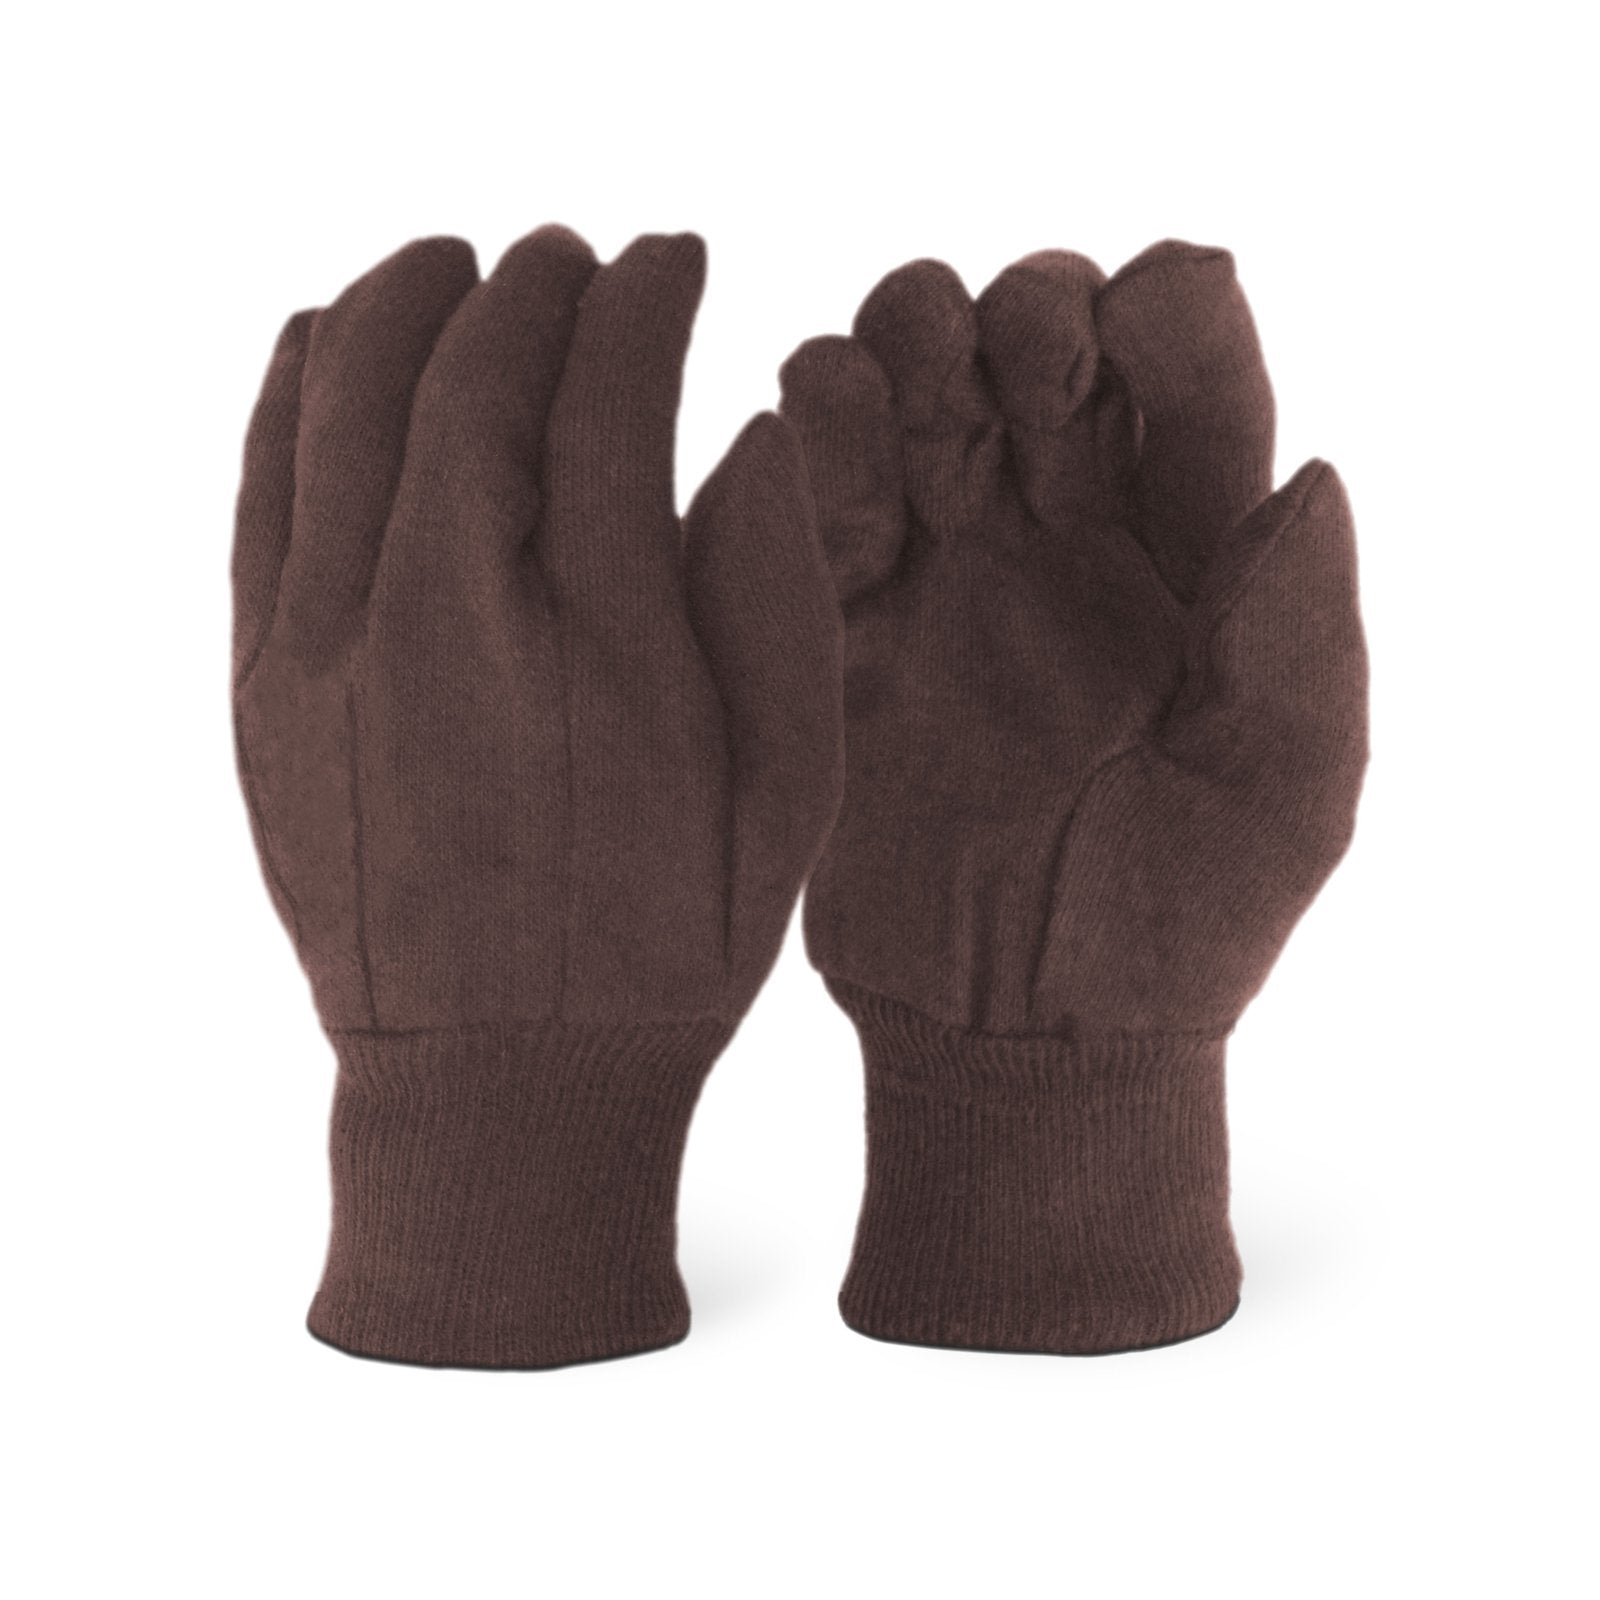 Brown Jersey Gloves (Ladies Size)